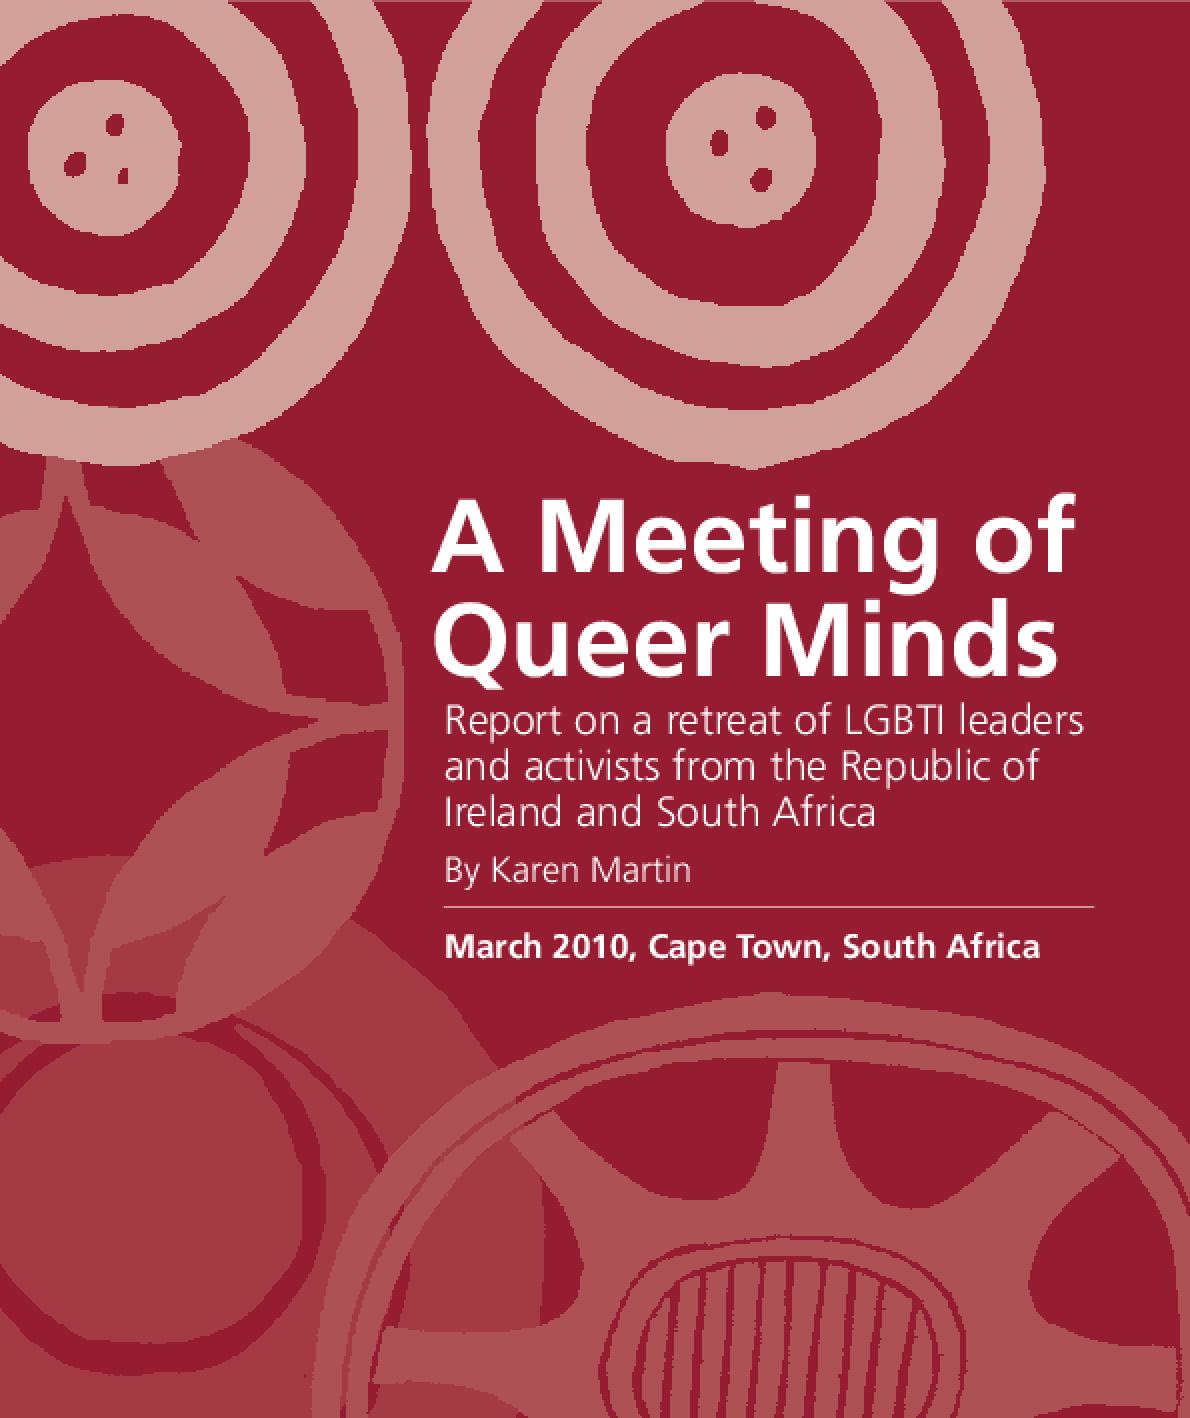 A Meeting of Queer Minds